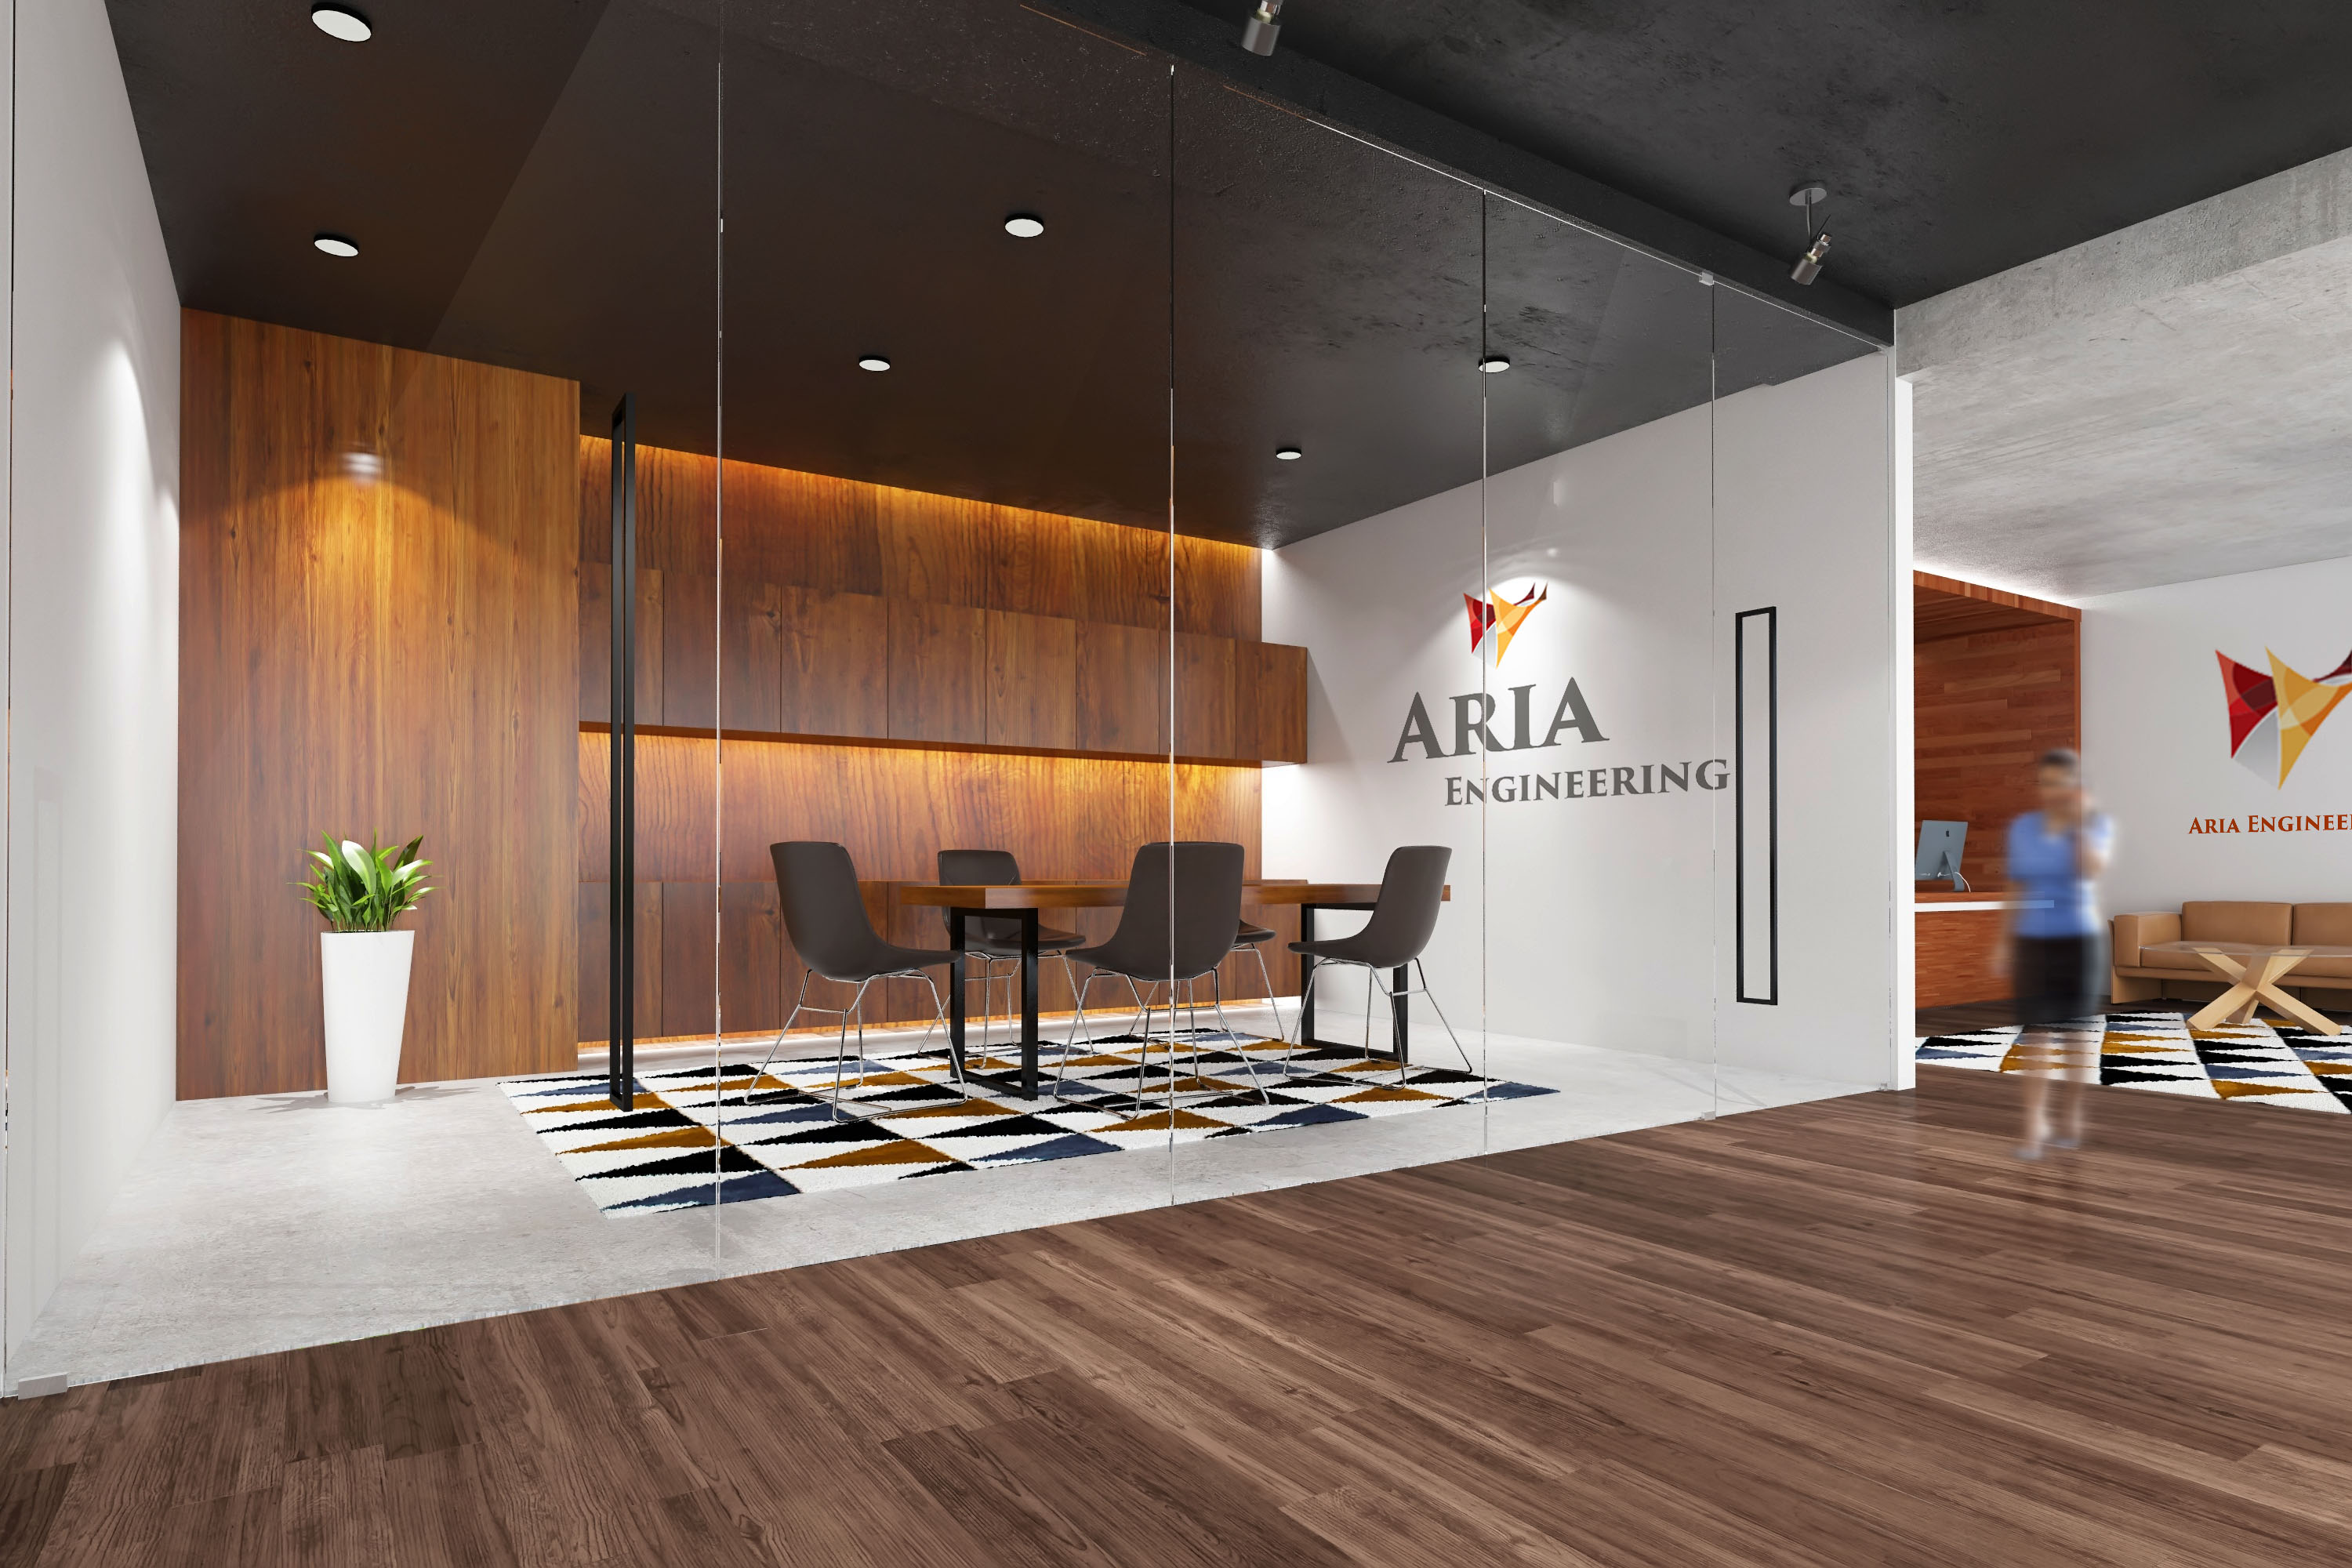 aria-engineering-office